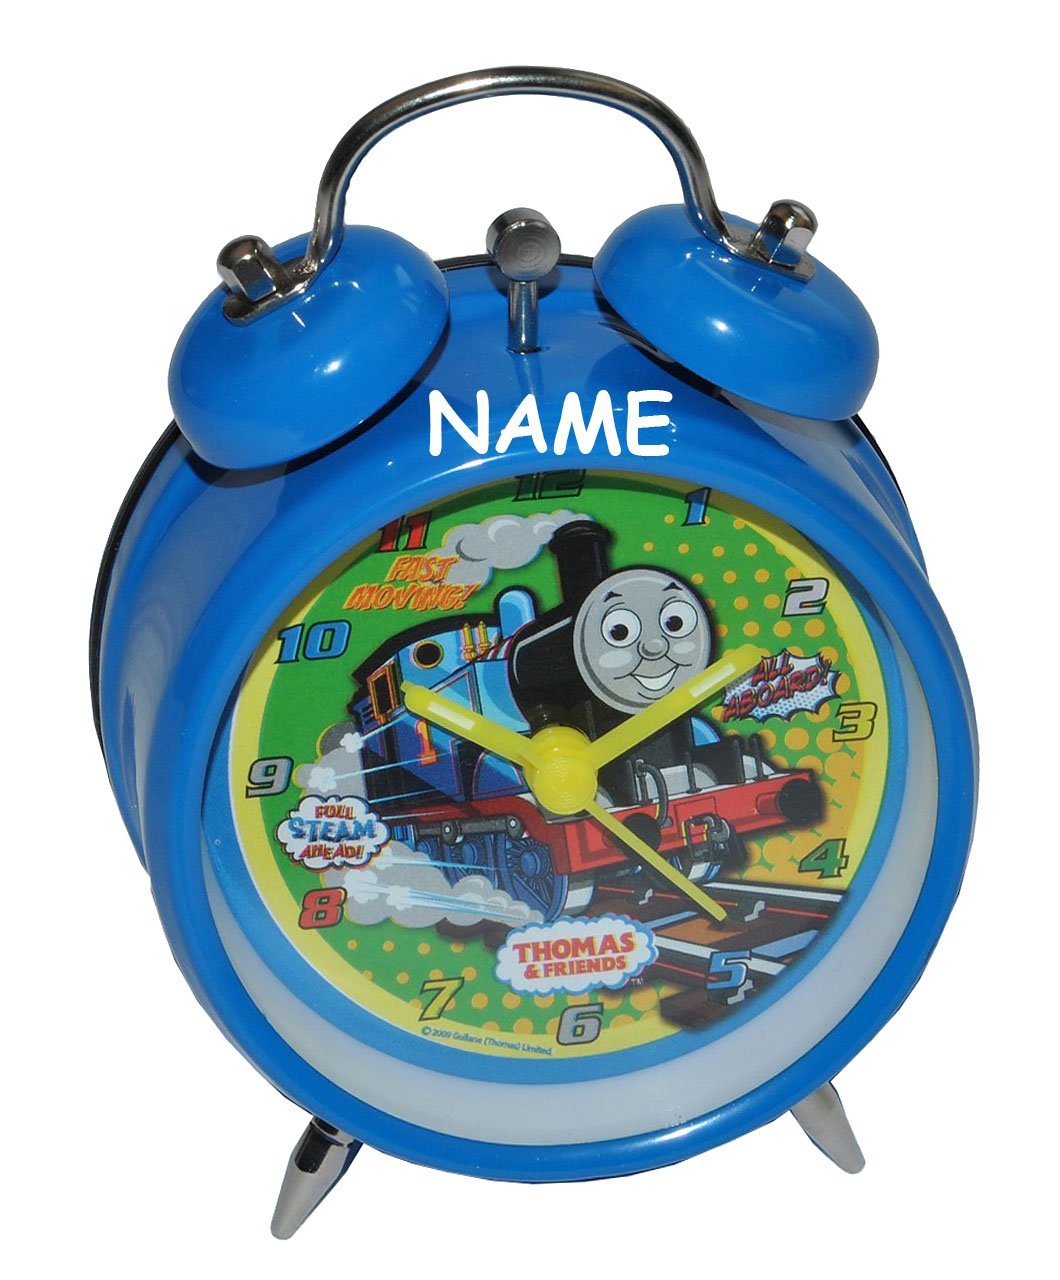 Wecker Thomas die Lokomotive incl. Namen – für Kinder Metall Kinderwecker Analog – Alarm Kinderwecker Metallwecker – Eisenbahn Lok Zug Züge kaufen